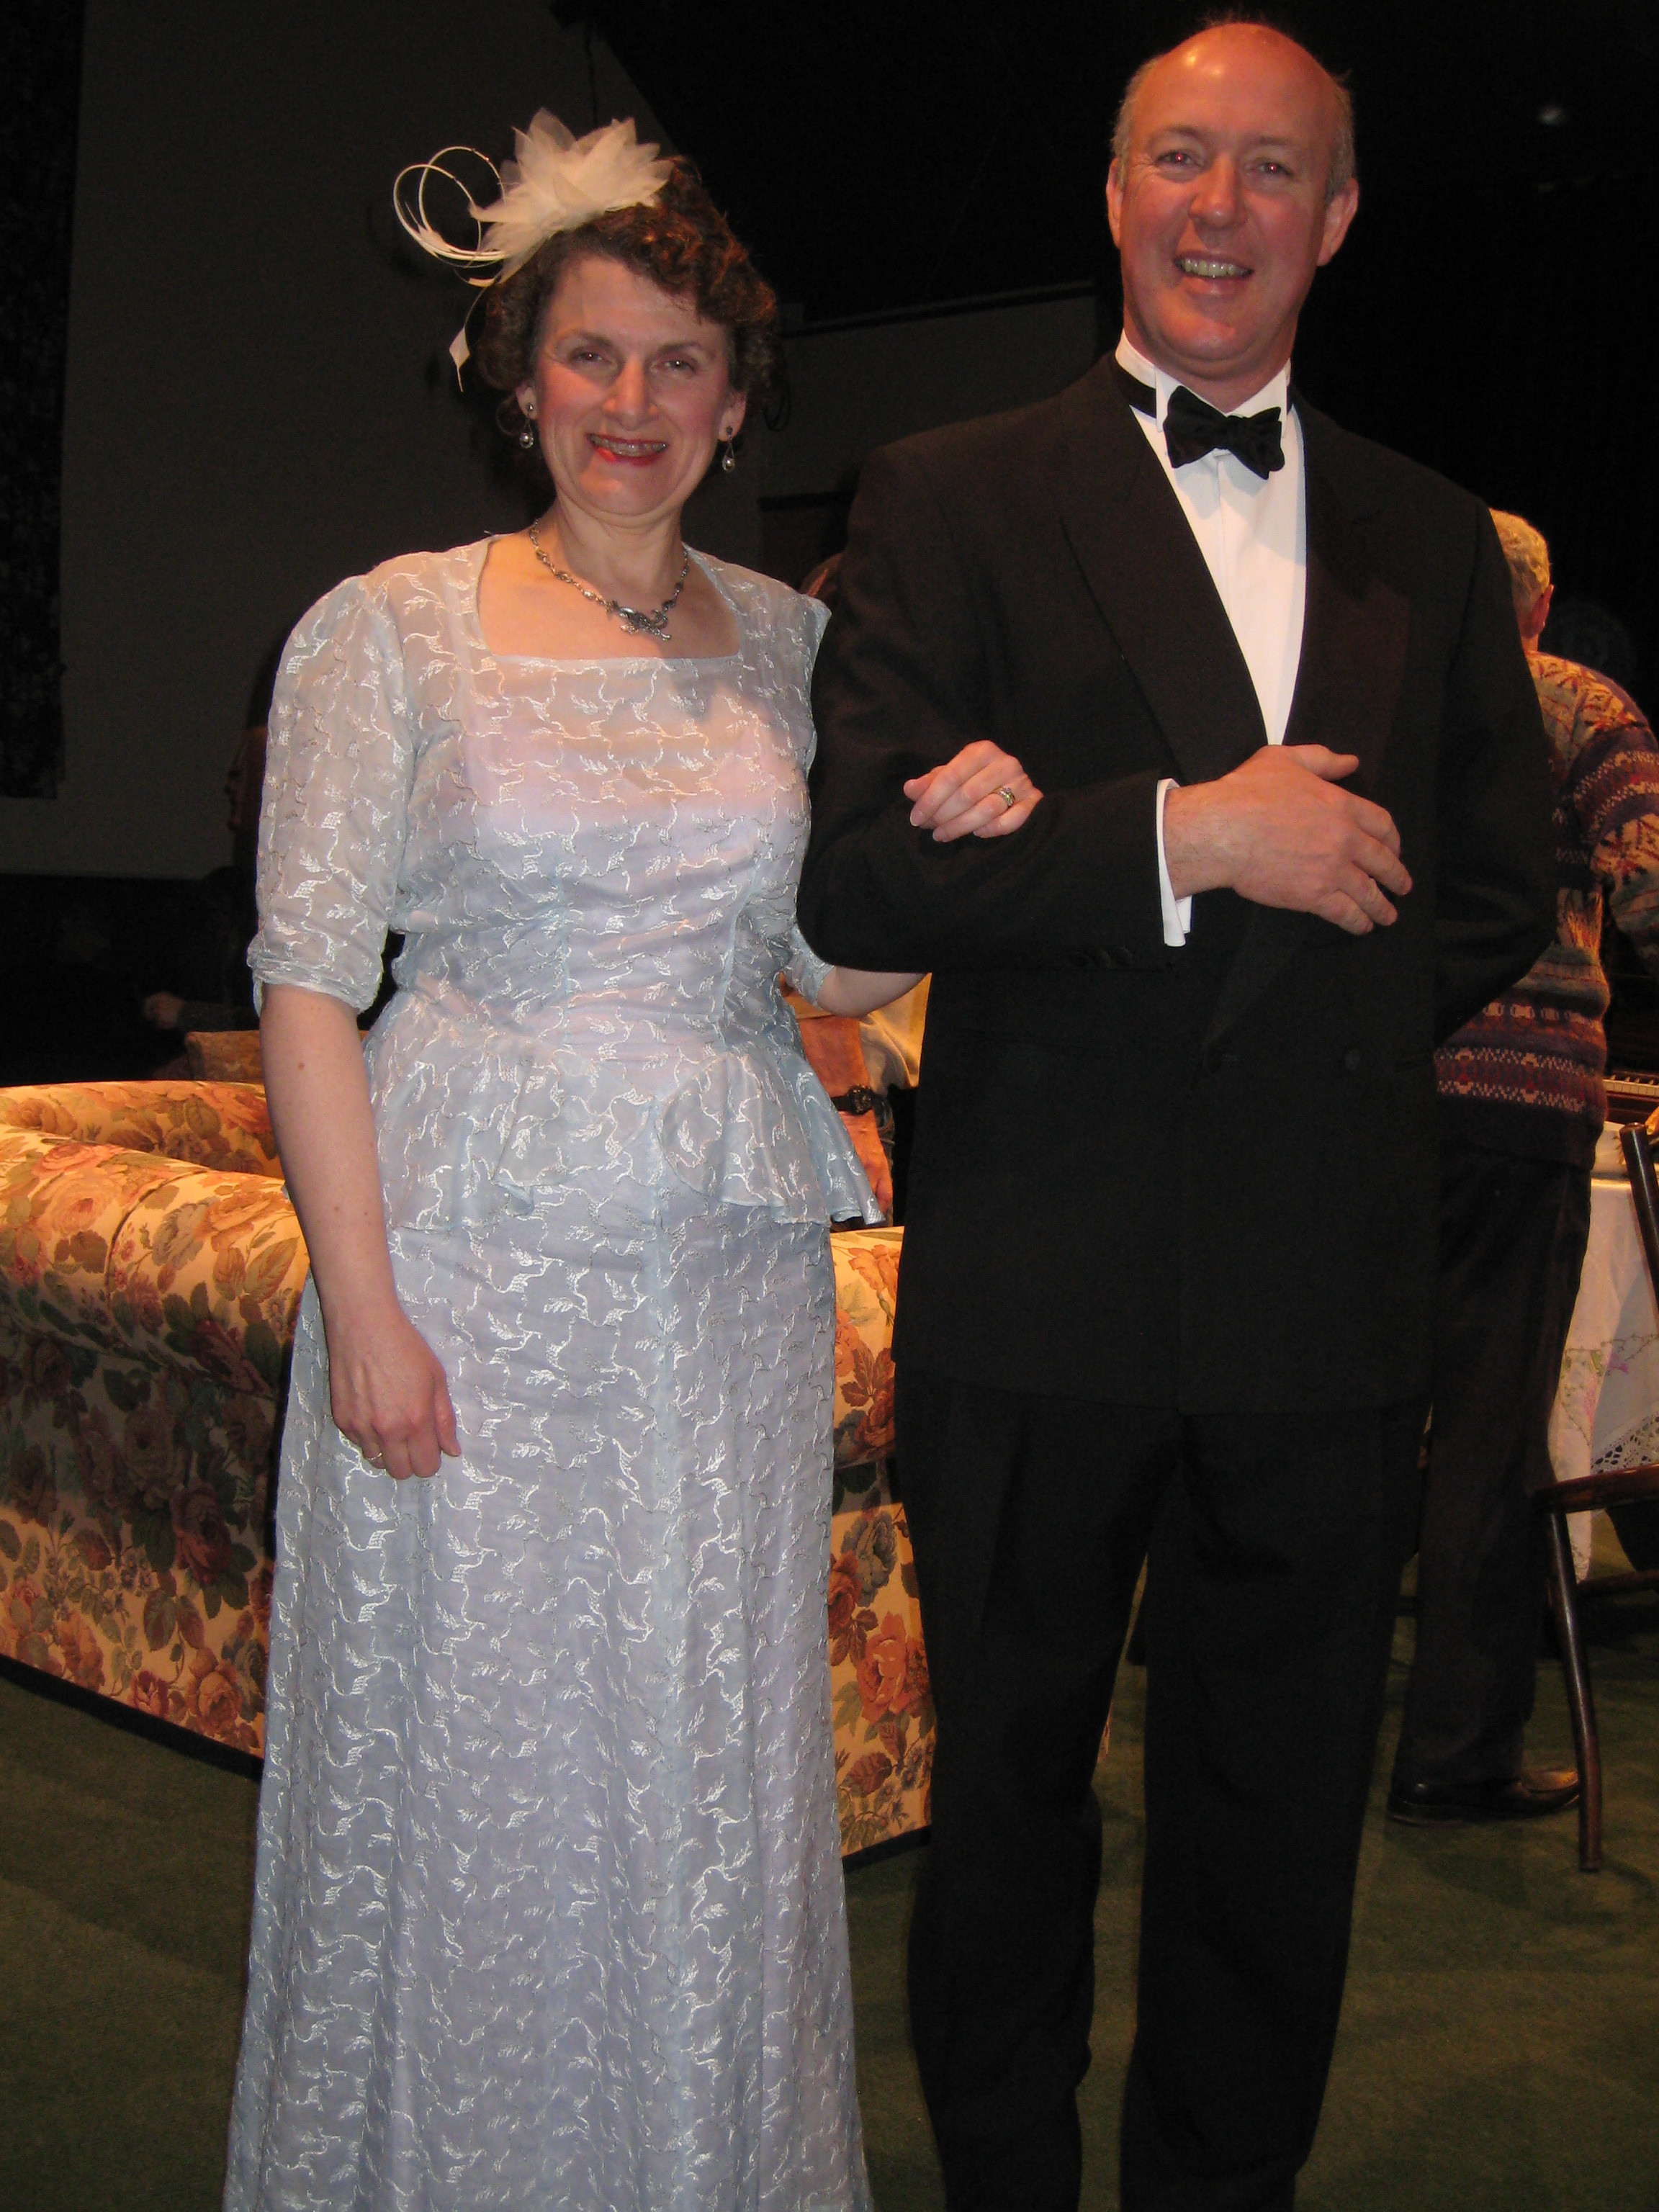 2009 Blithe Spirit From Jean Buckley (17